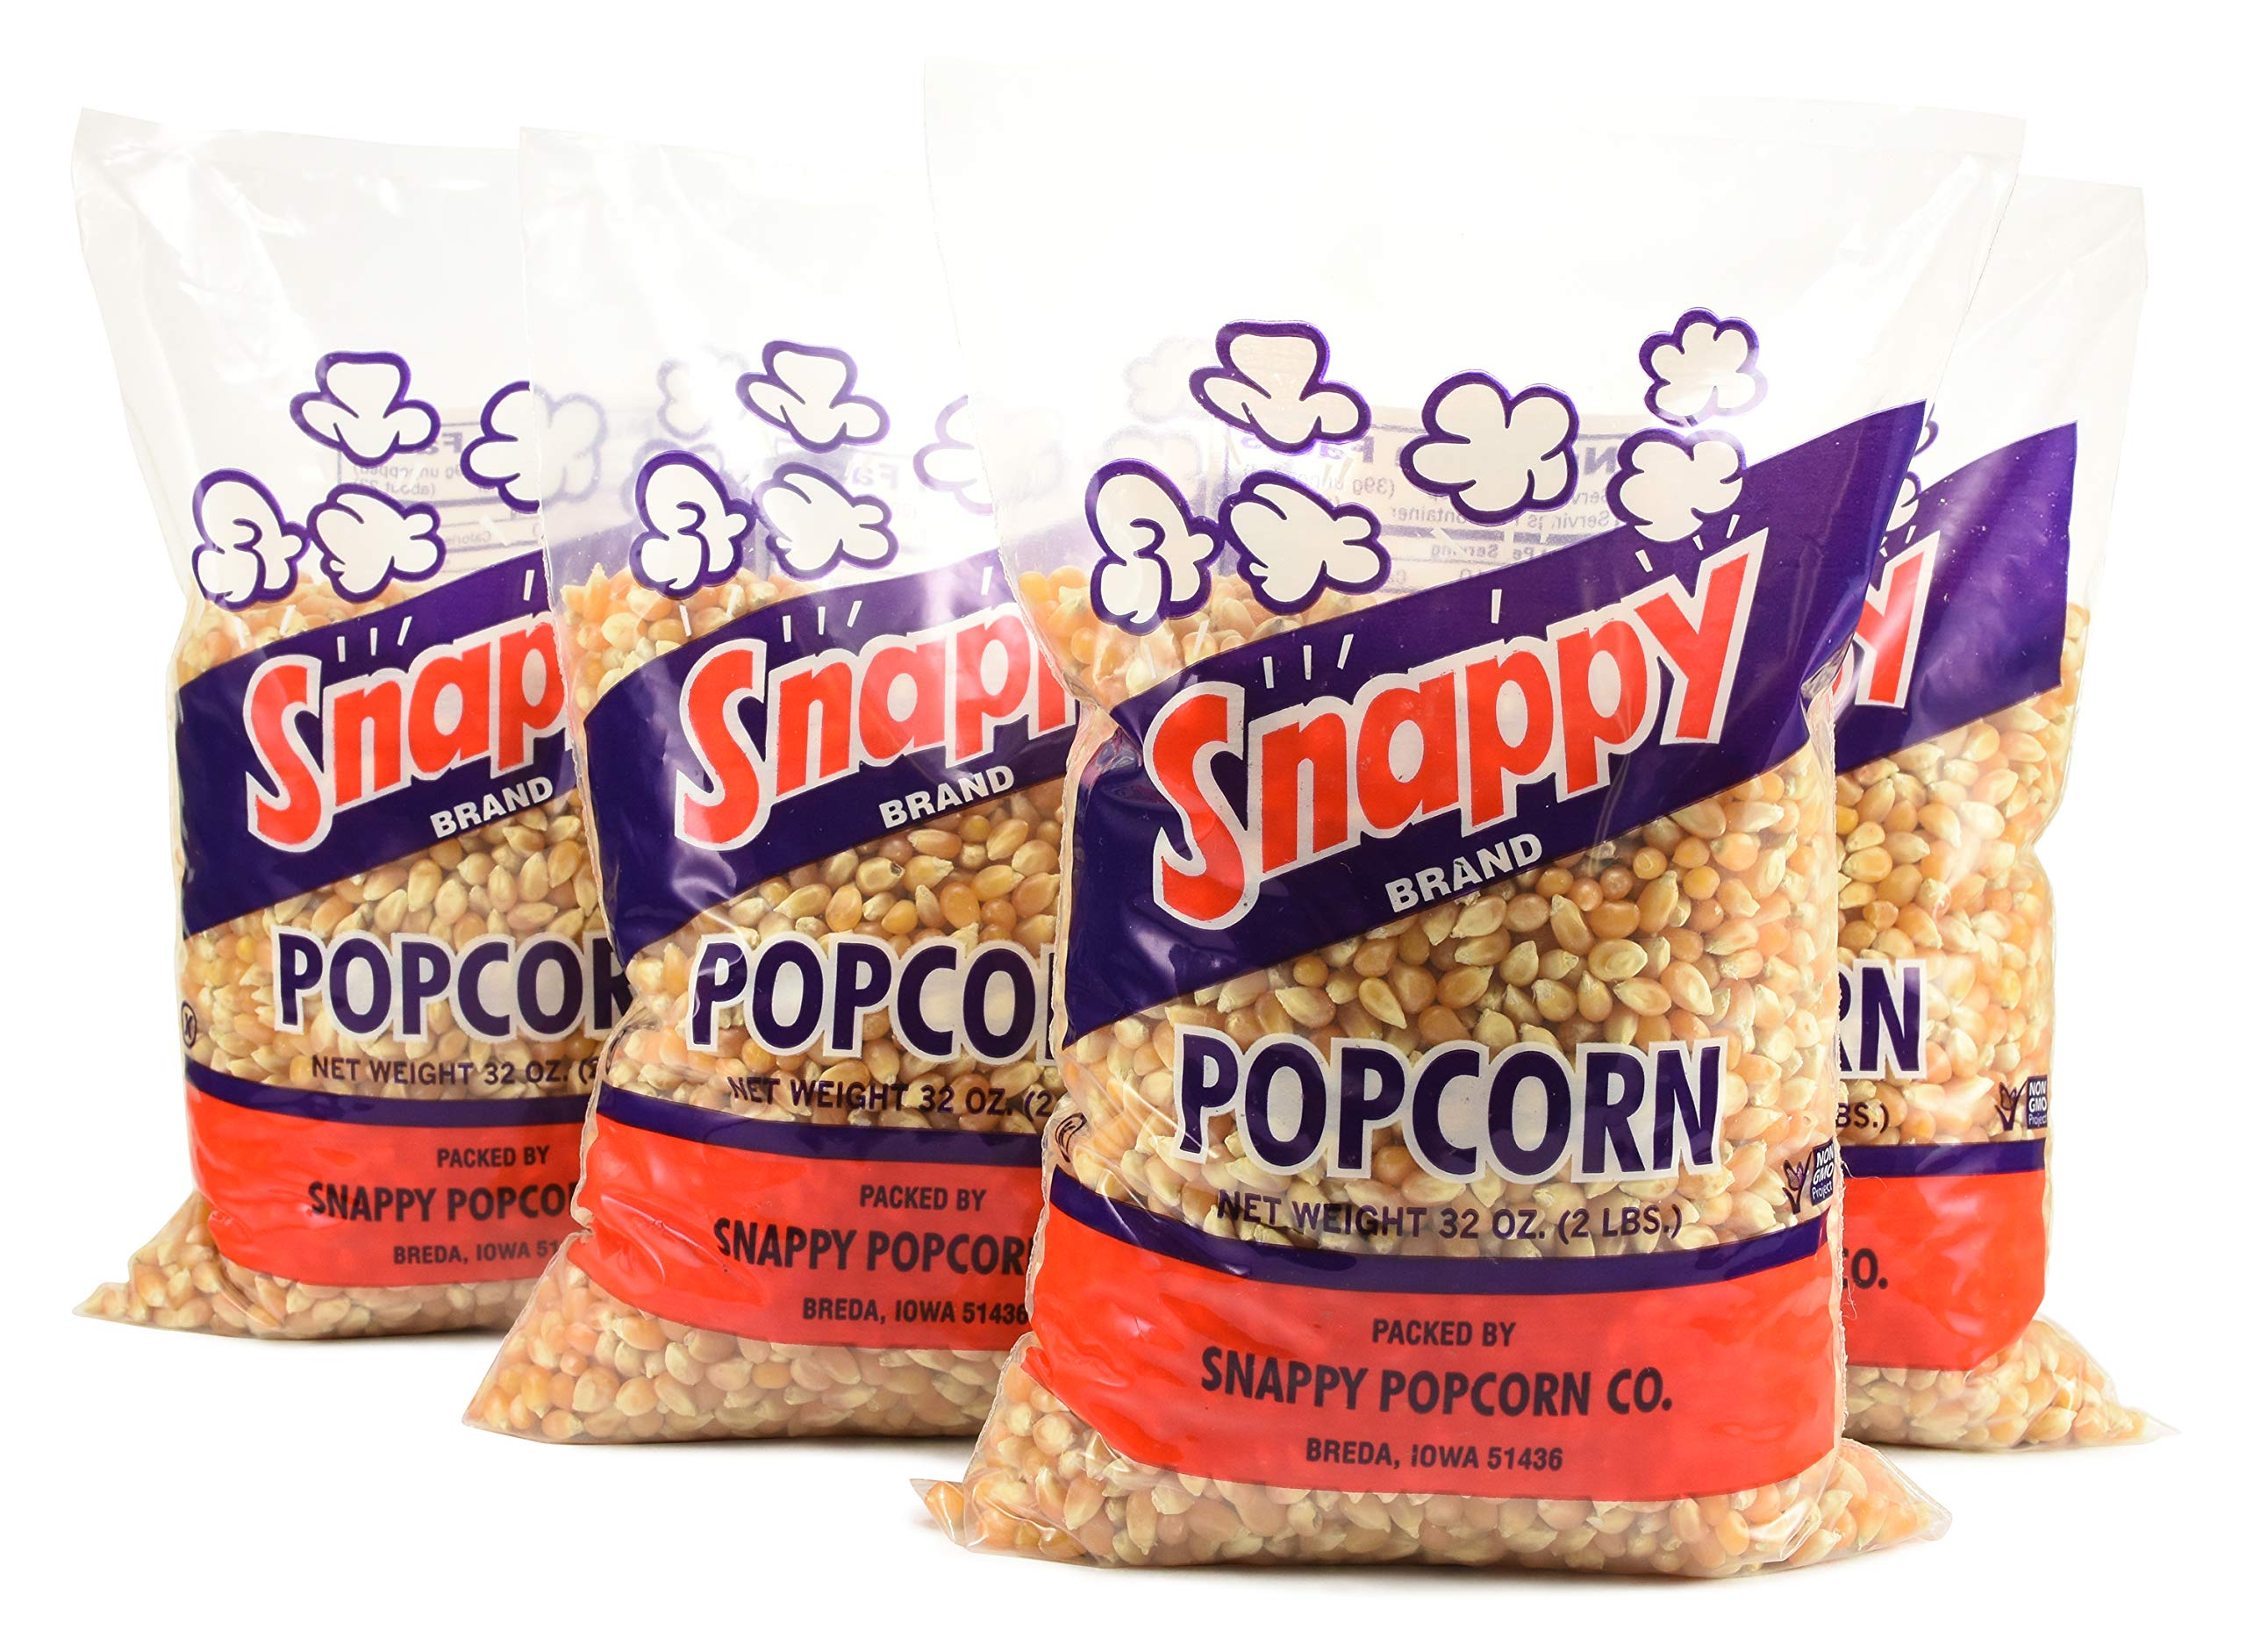 Snappy Yellow Popcorn Kernels Bulk, 4 Pack, 2lb bags - Raw Kernels for Popcorn Machines, Air Poppers and Popping by SNAPPY